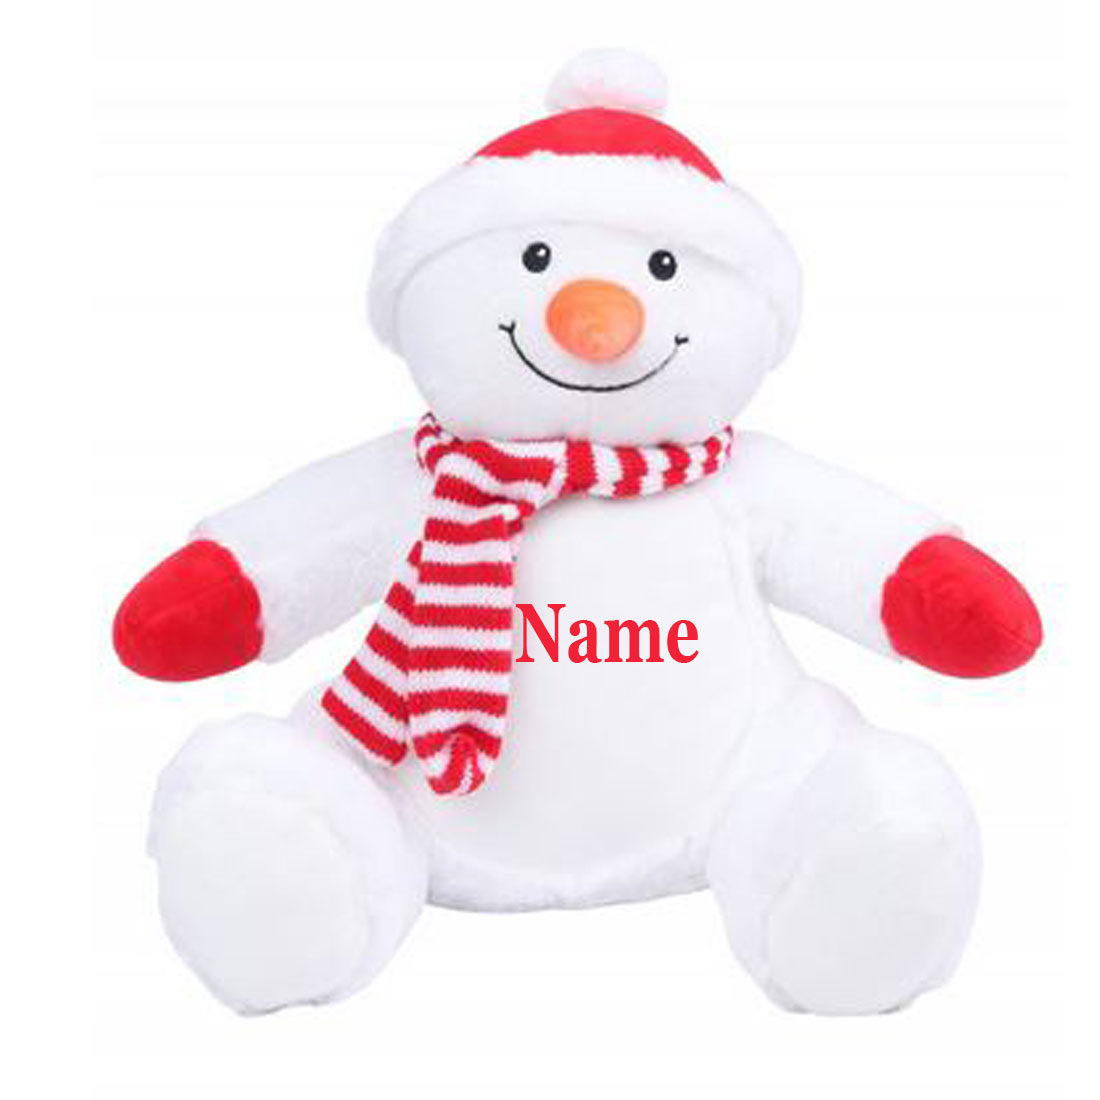 Personalised Embroidered Name, Mumbles Soft Snowman (Teddy Bear)